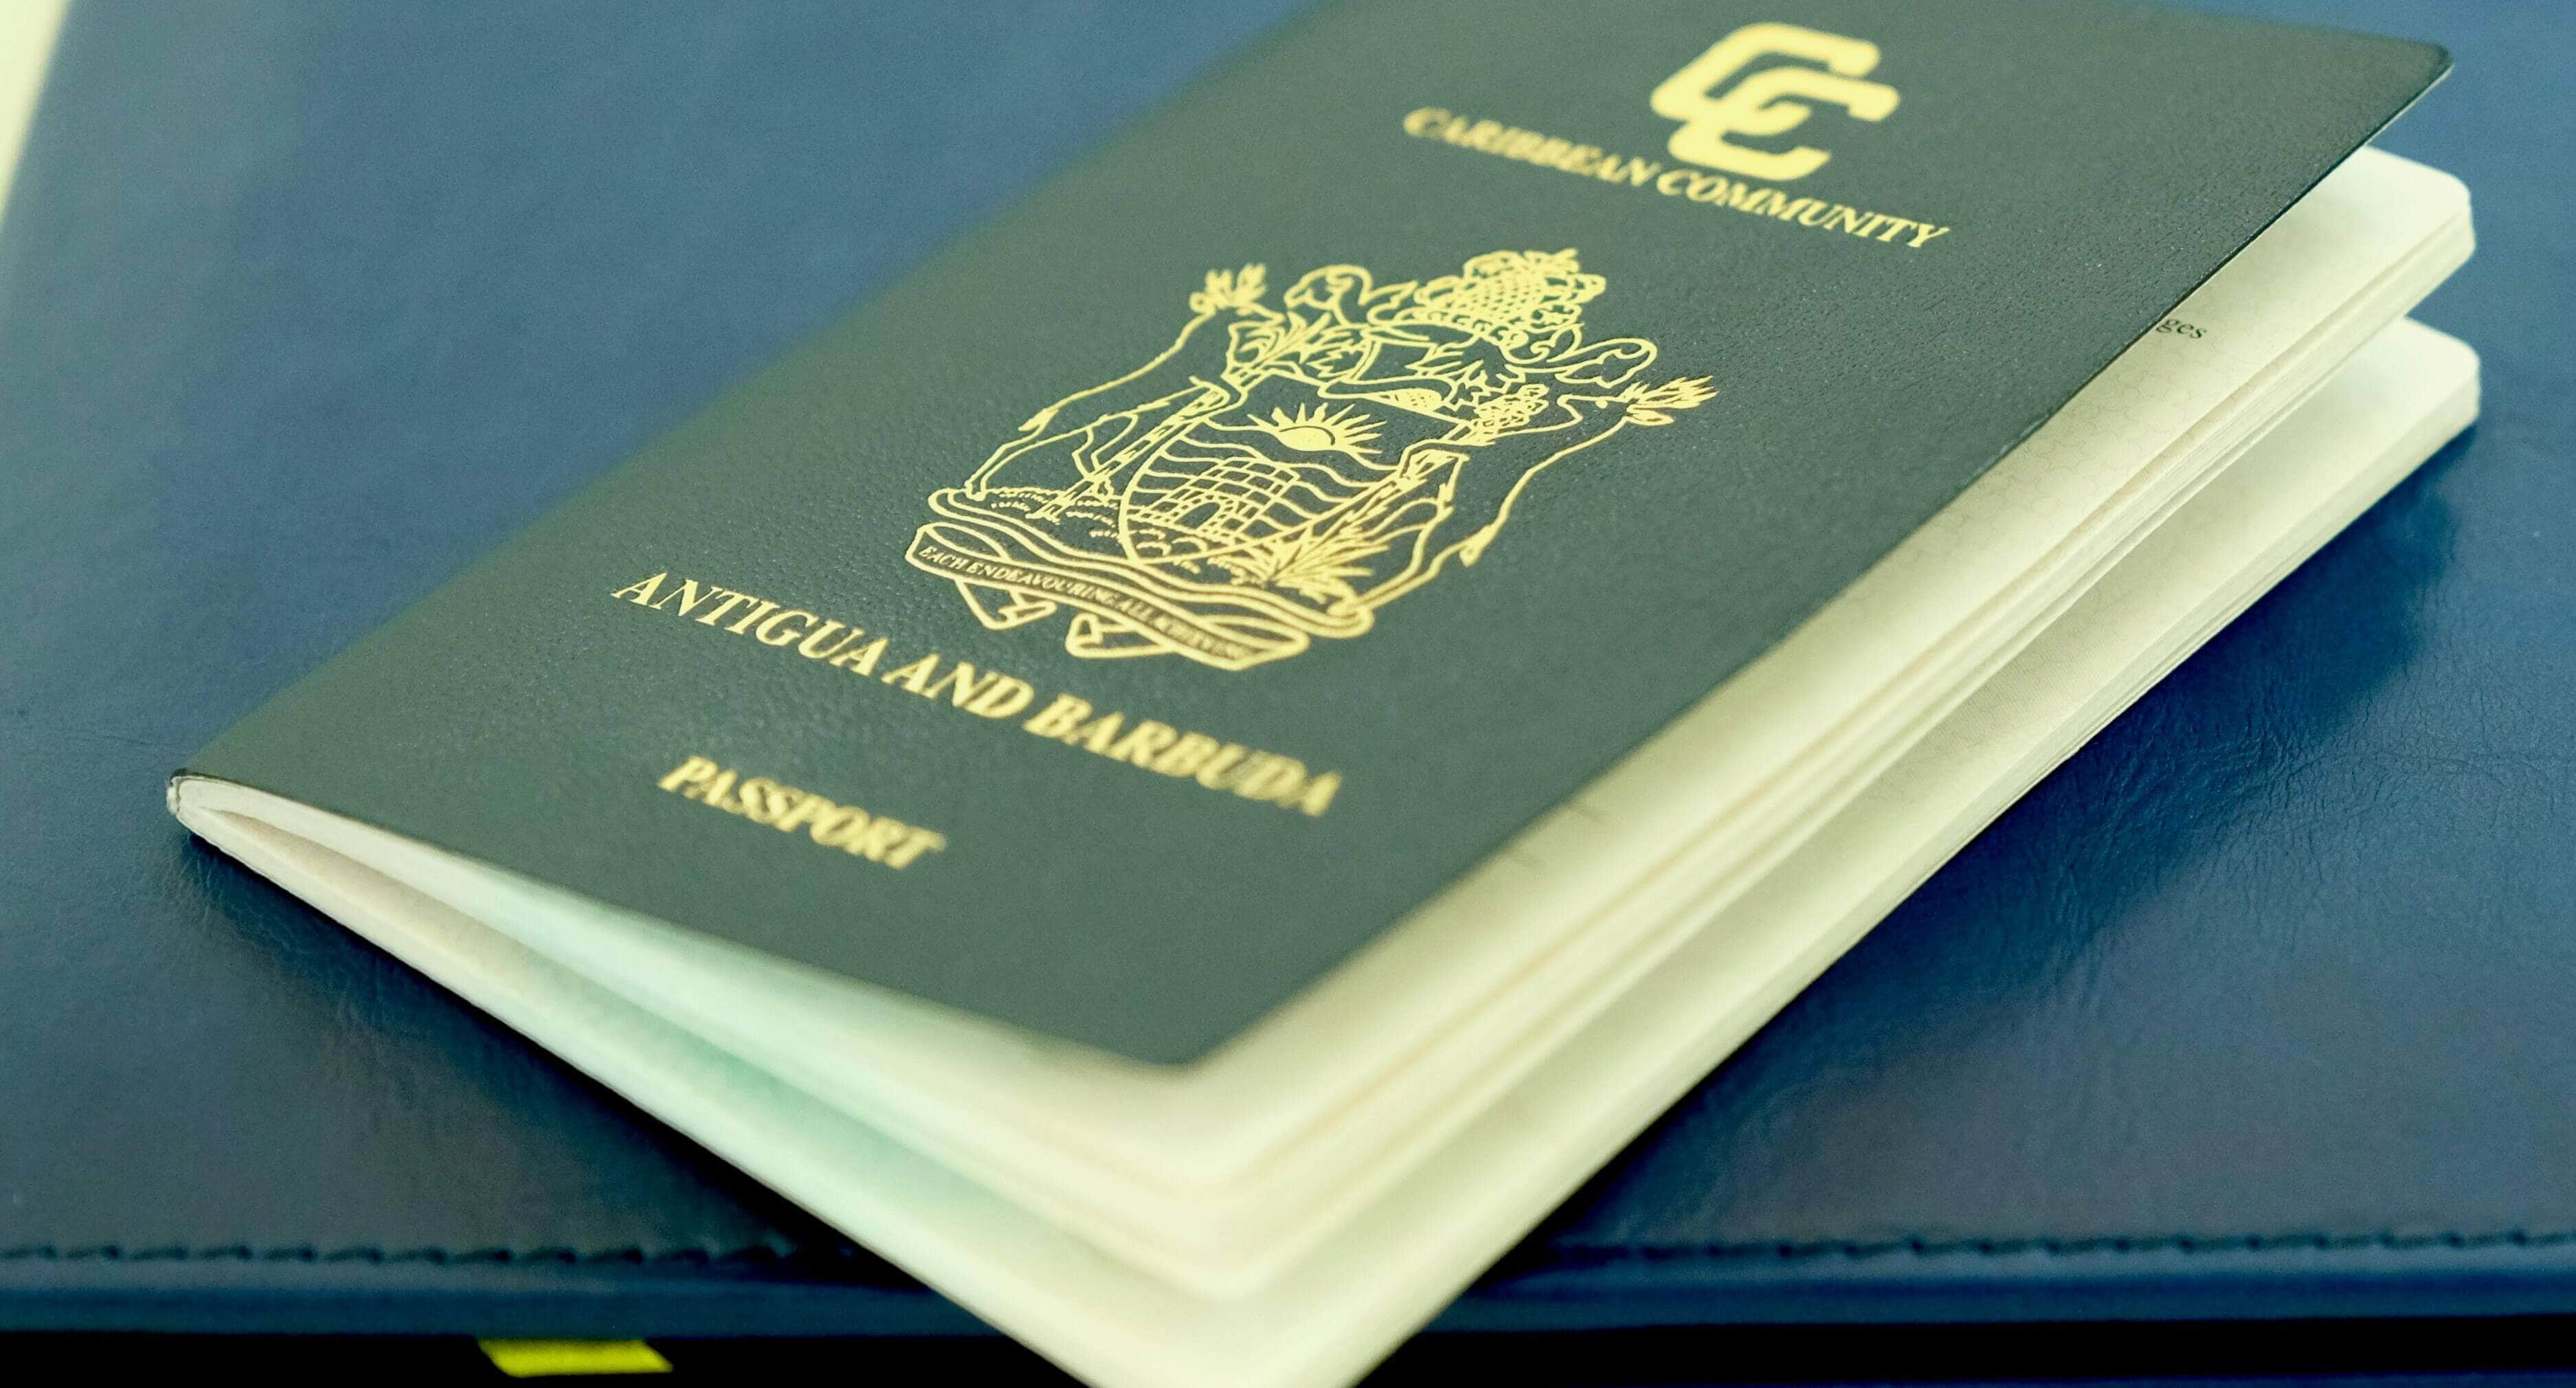 Antigua and Barbuda Announces Reduction in Citizenship Investment to $100,000 for Family of 4